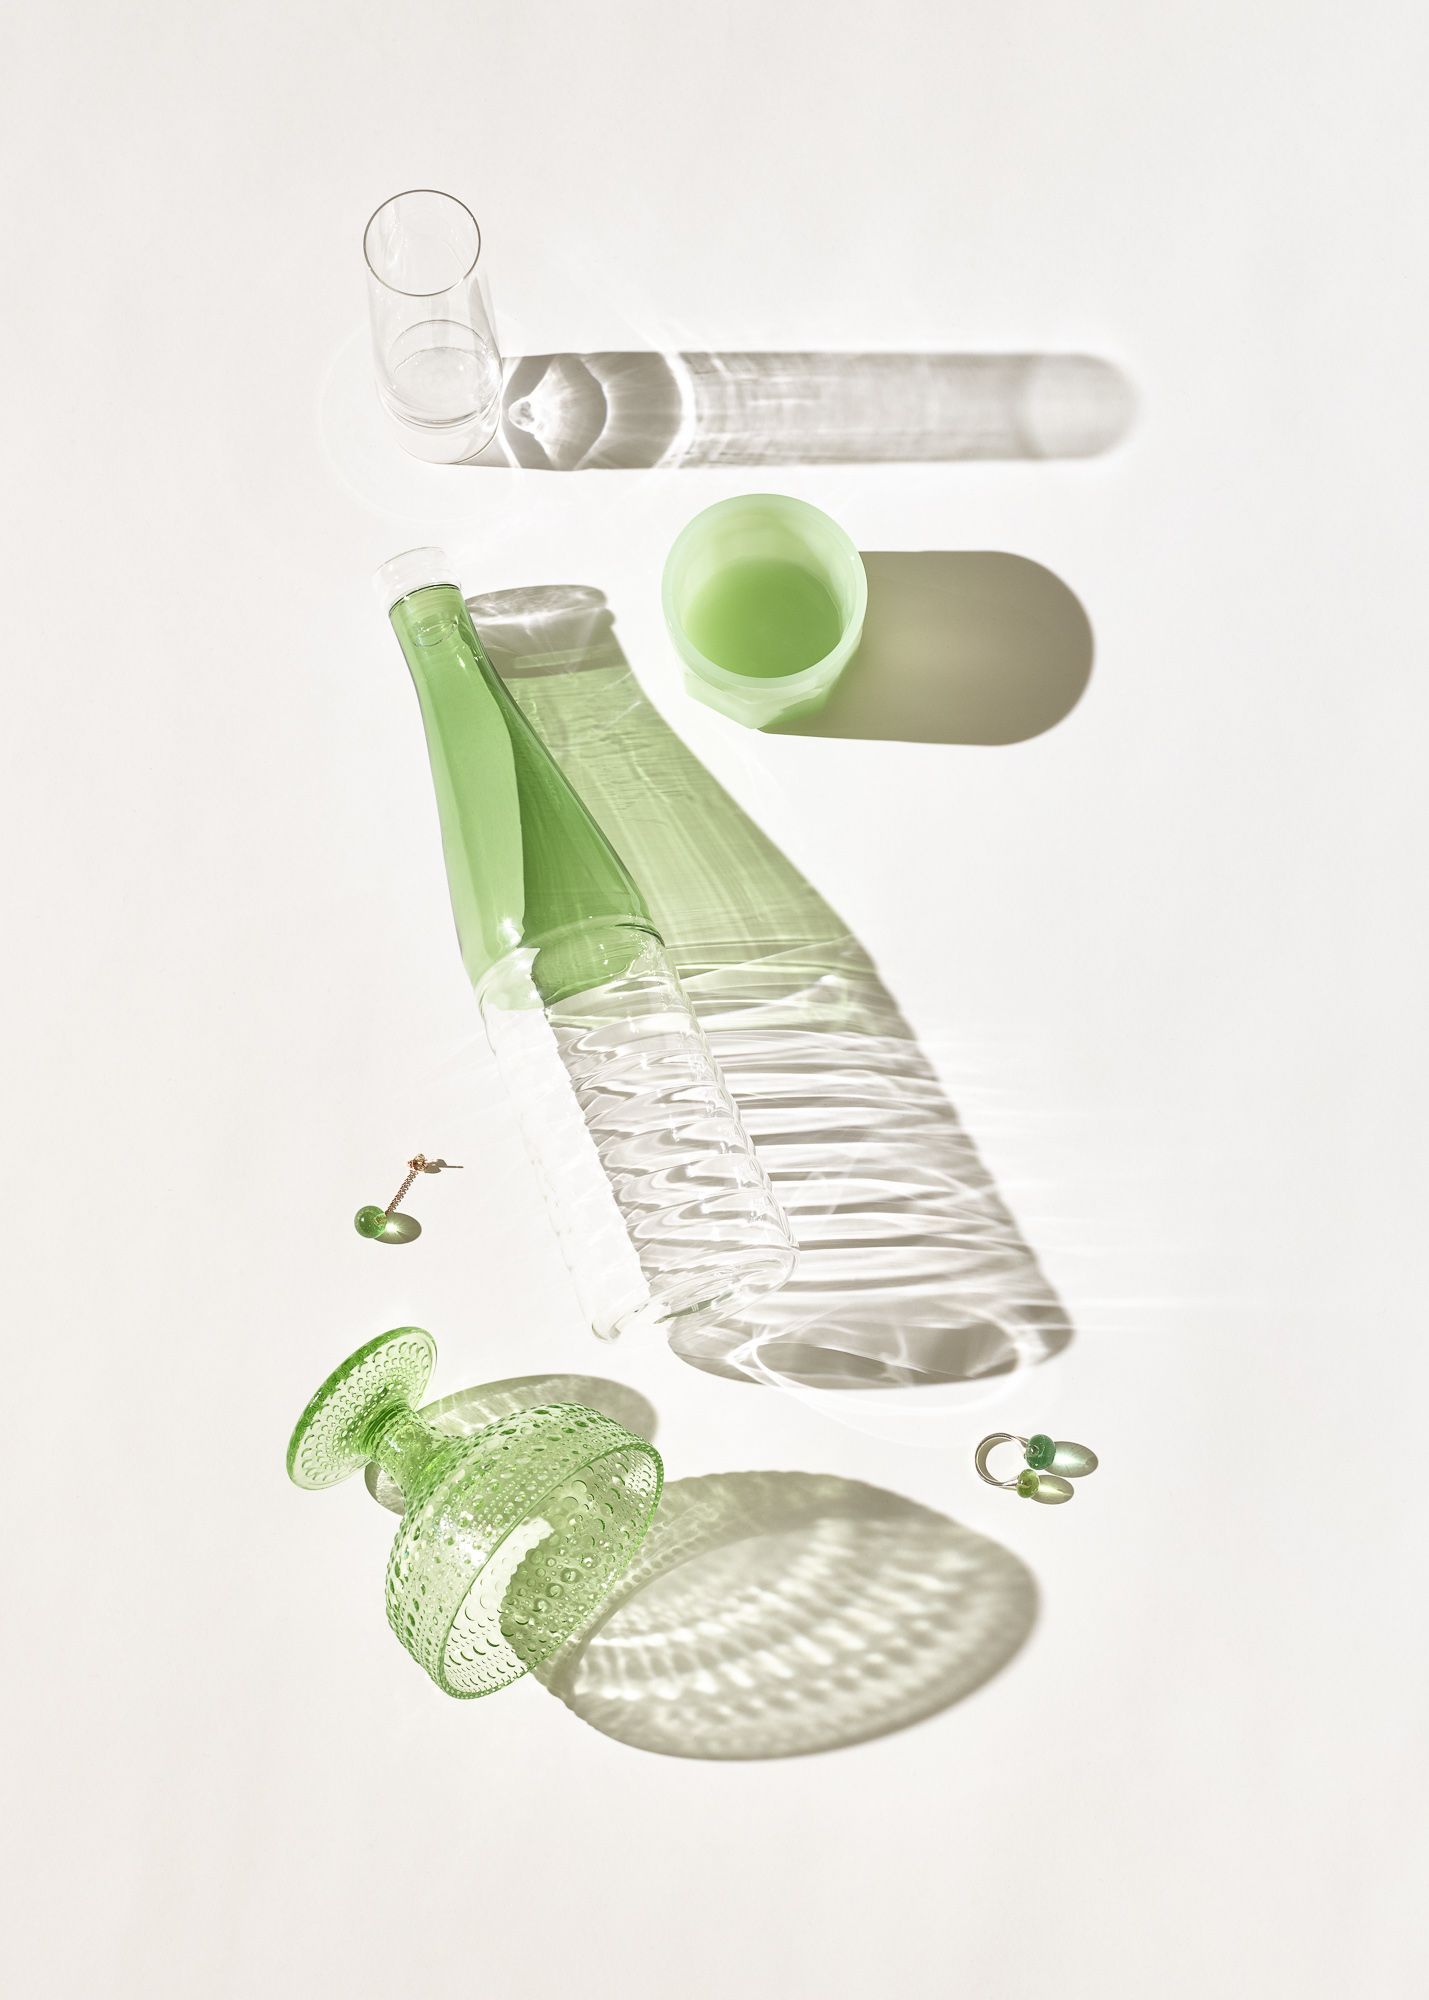 Glass design and shadows photographed for Absoluut magazine / Frederik Vercruysse